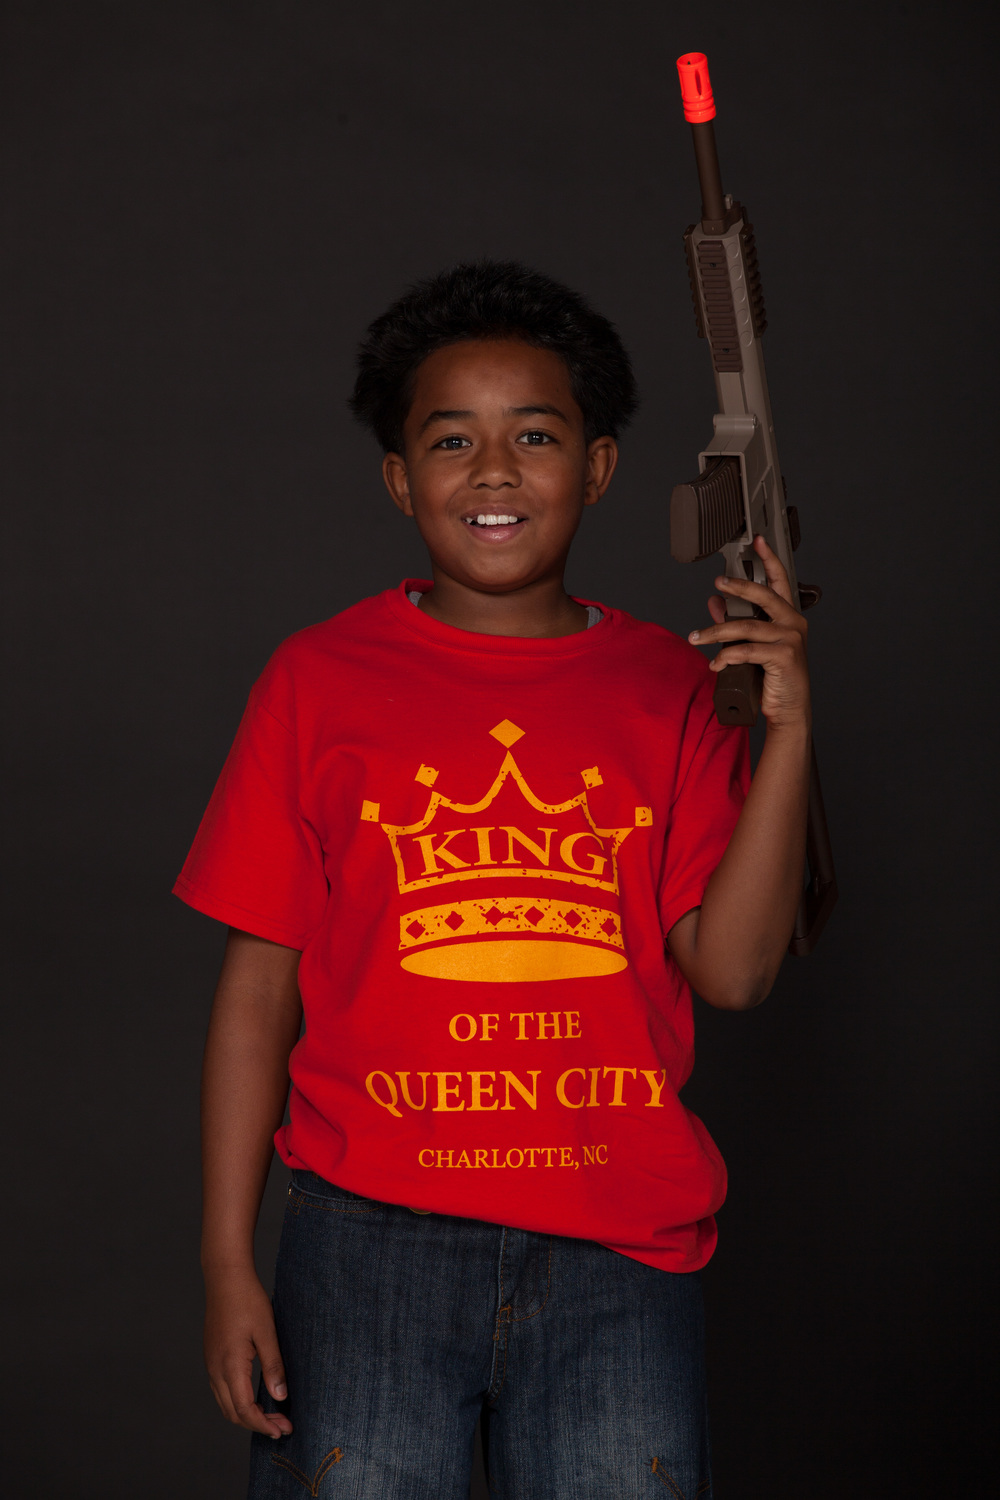 King of the Queen City shirt